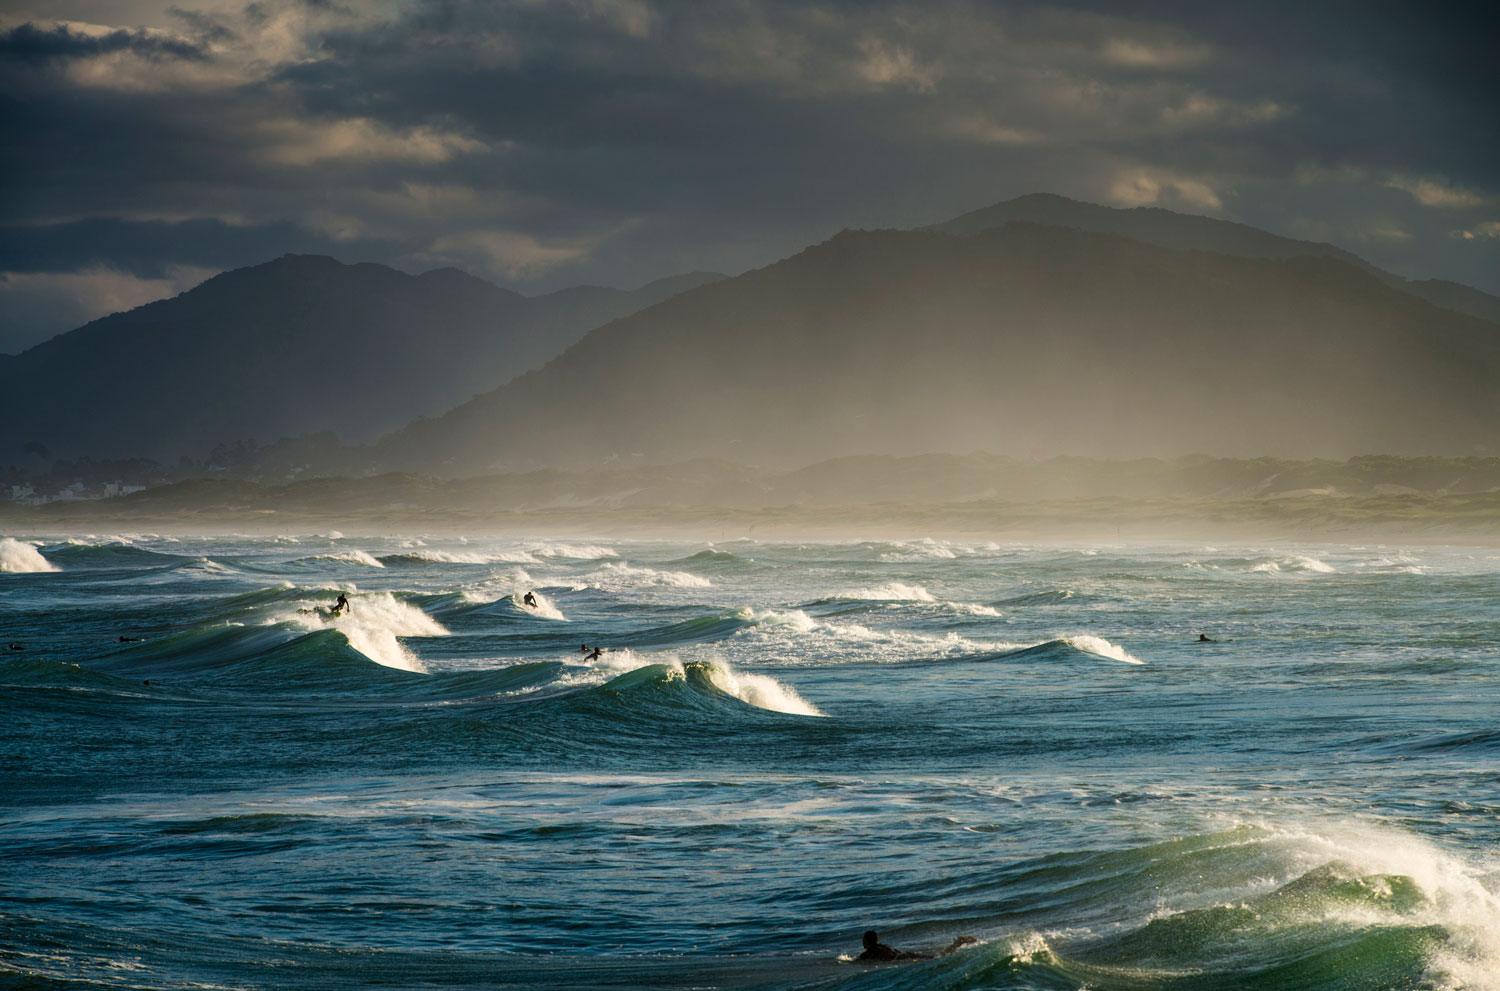 Joaquina Beach, located in the south of Brazil, is one of the most popular beaches for surfers.